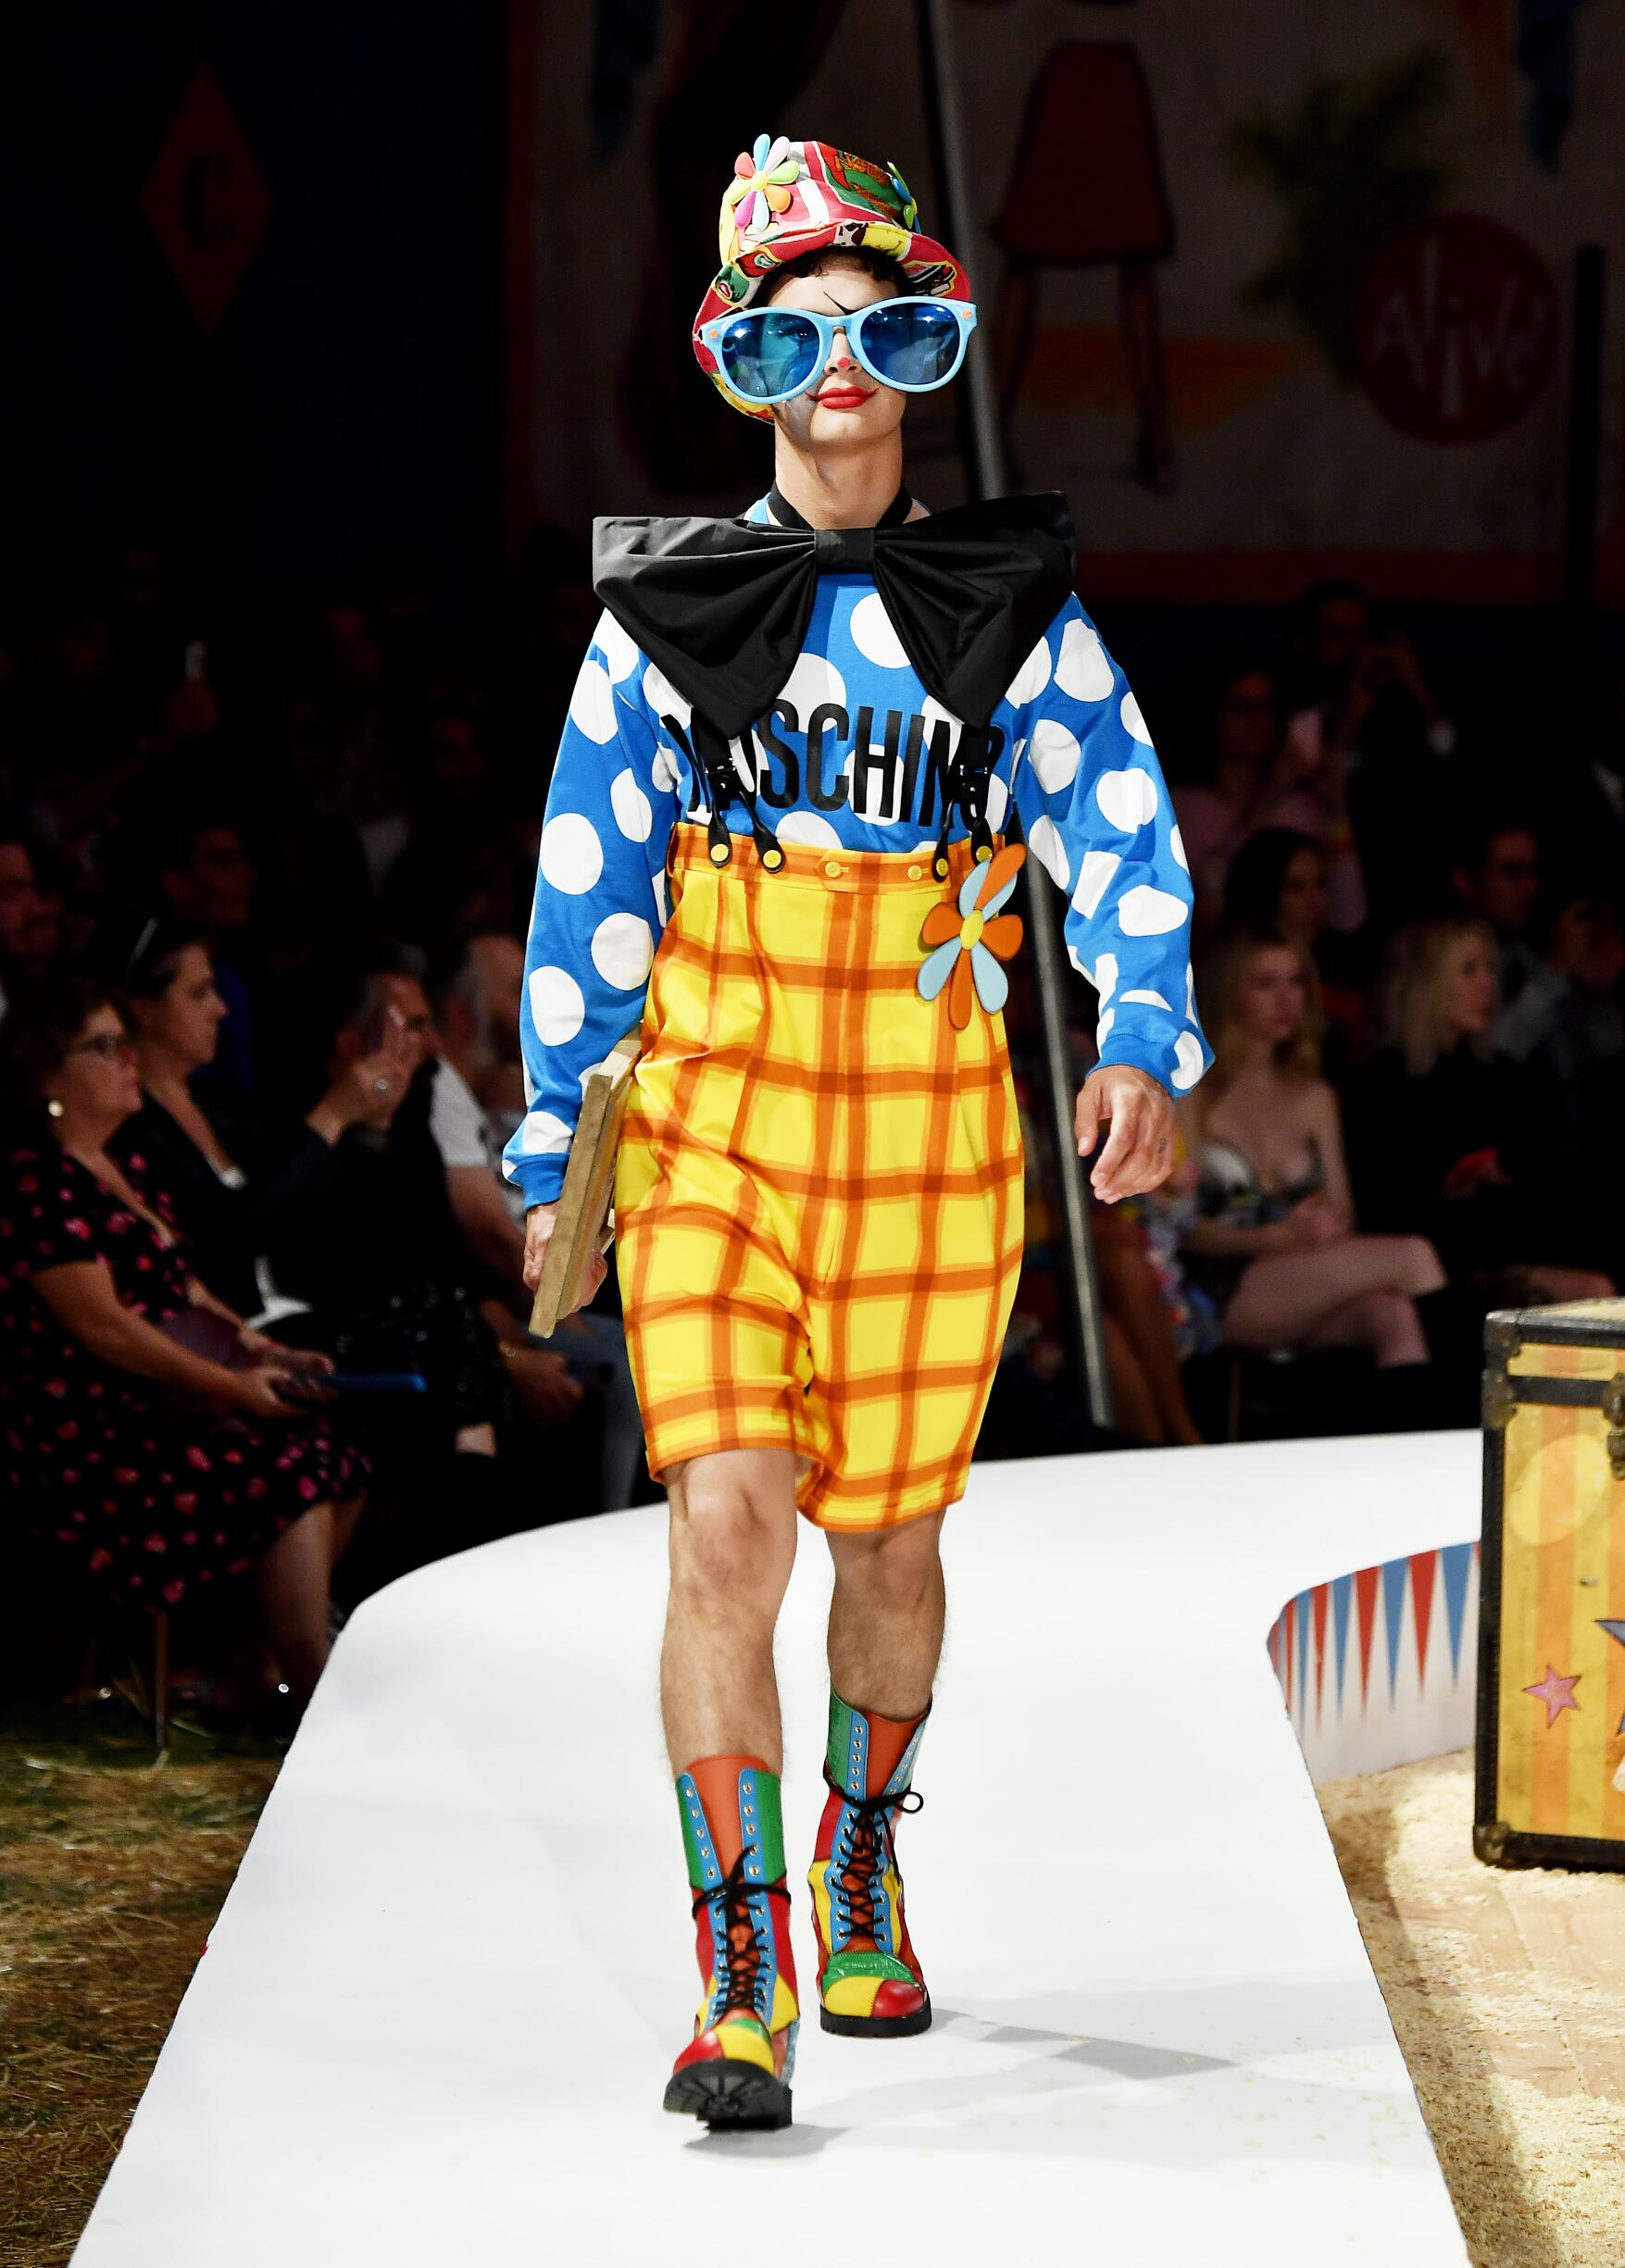 Moschino Spring Summer 2019 Menswear and Women's Resort Collection Look 46 Los Angeles